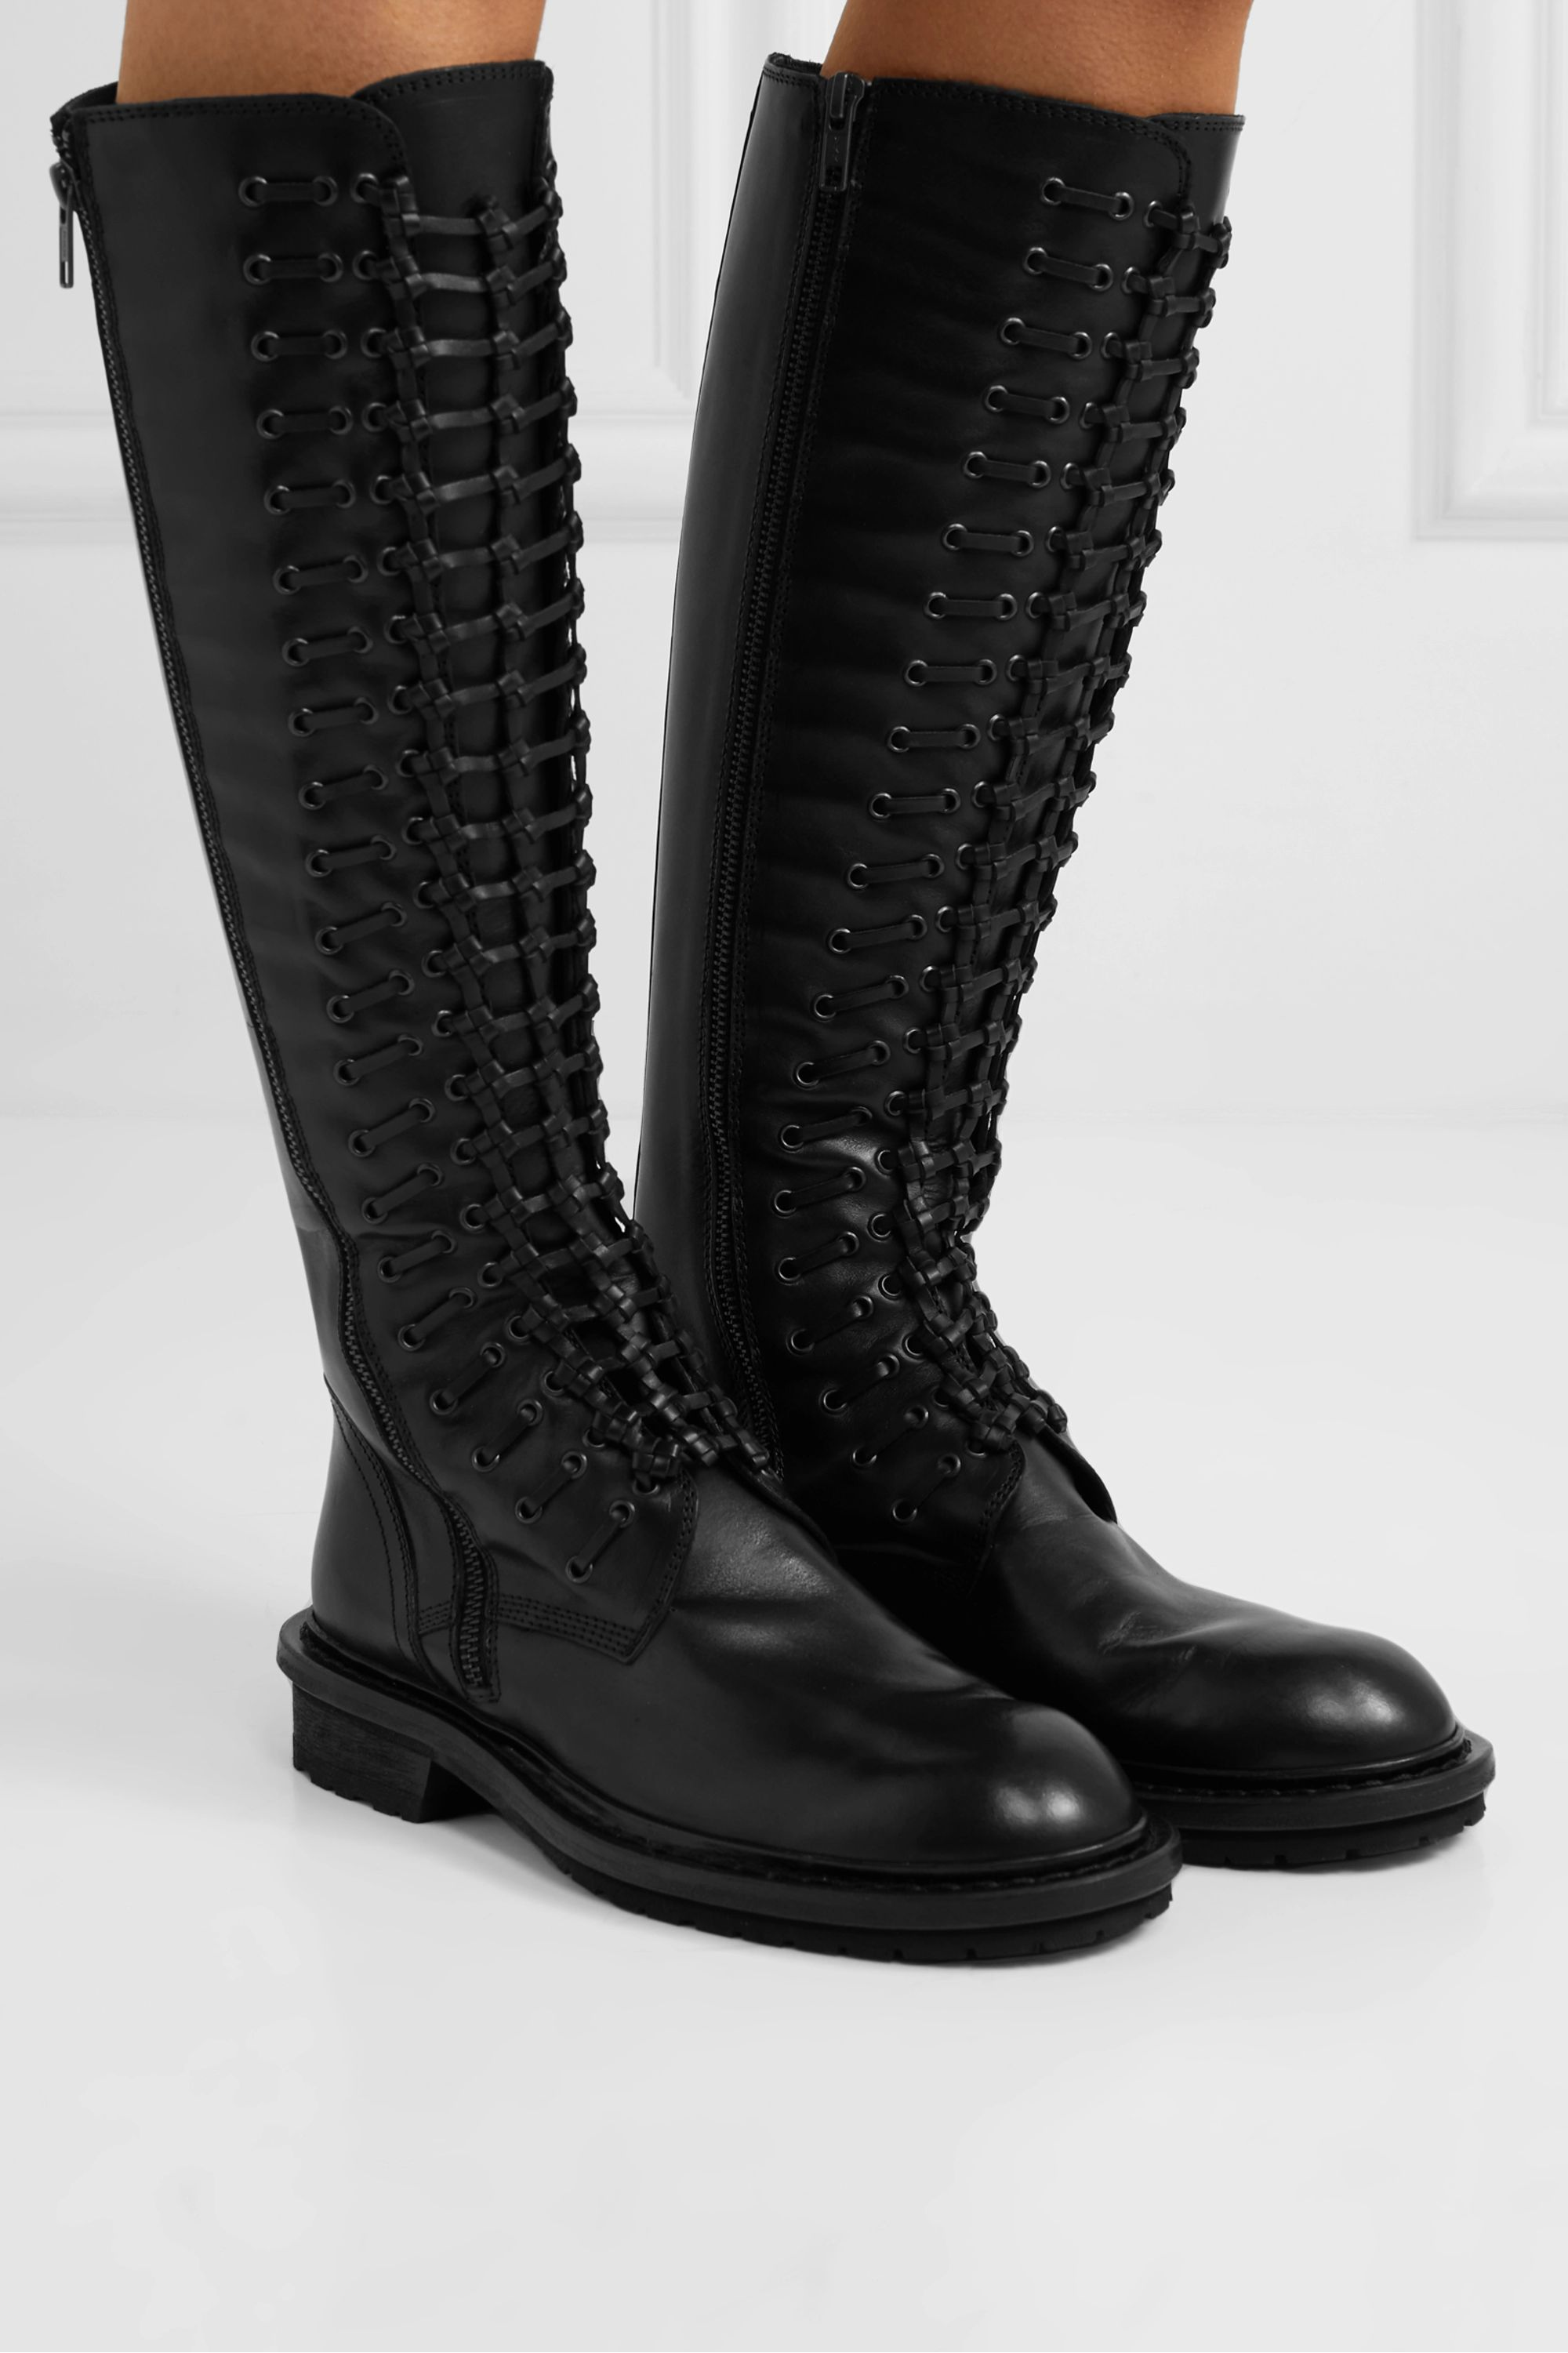 Black Lace-up leather knee boots | Ann